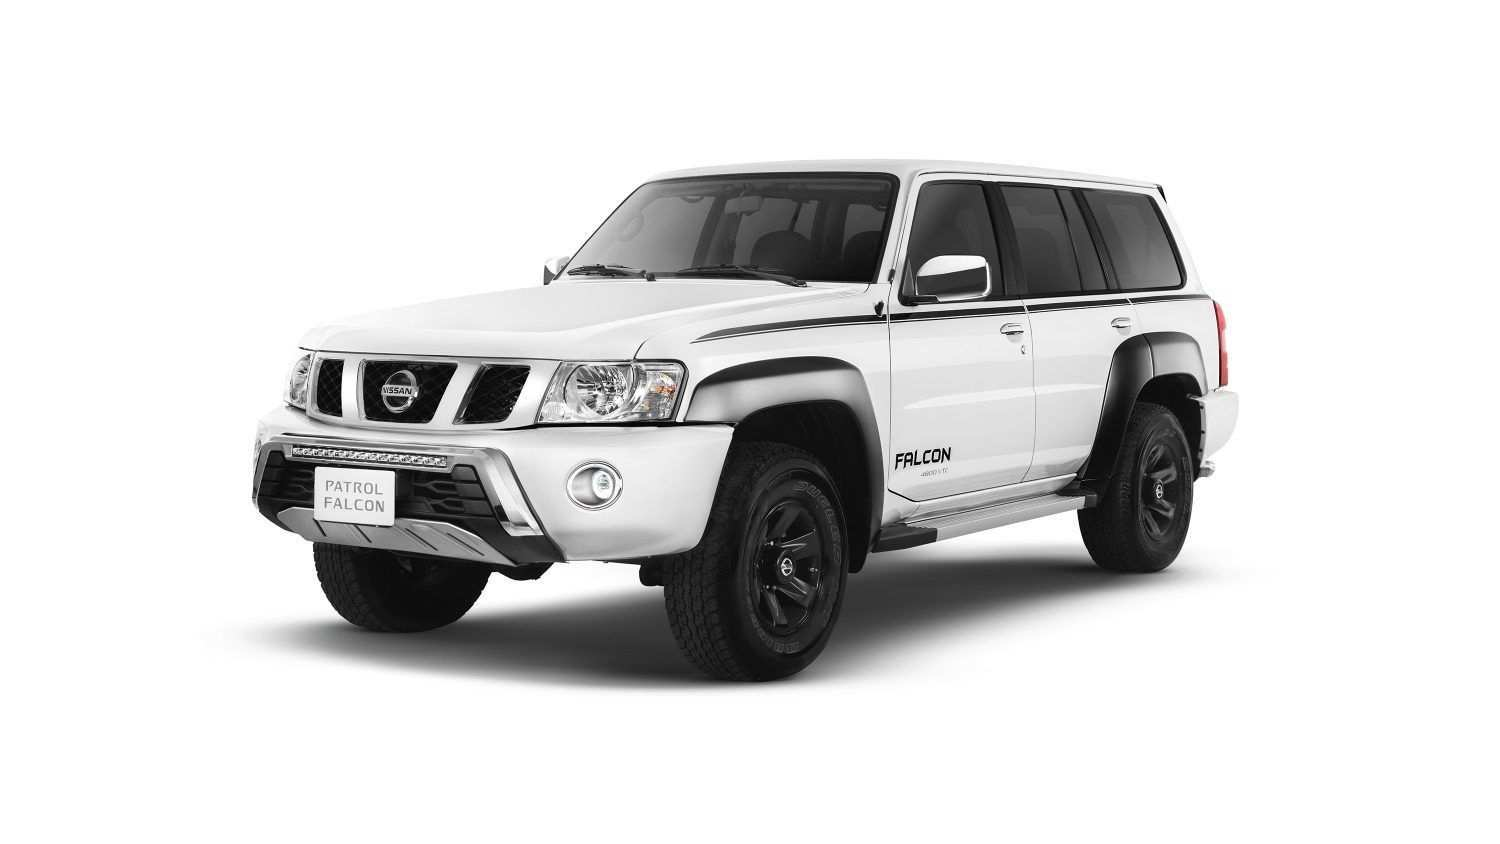 17 New Nissan Super Safari 2020 Pricing with Nissan Super Safari 2020